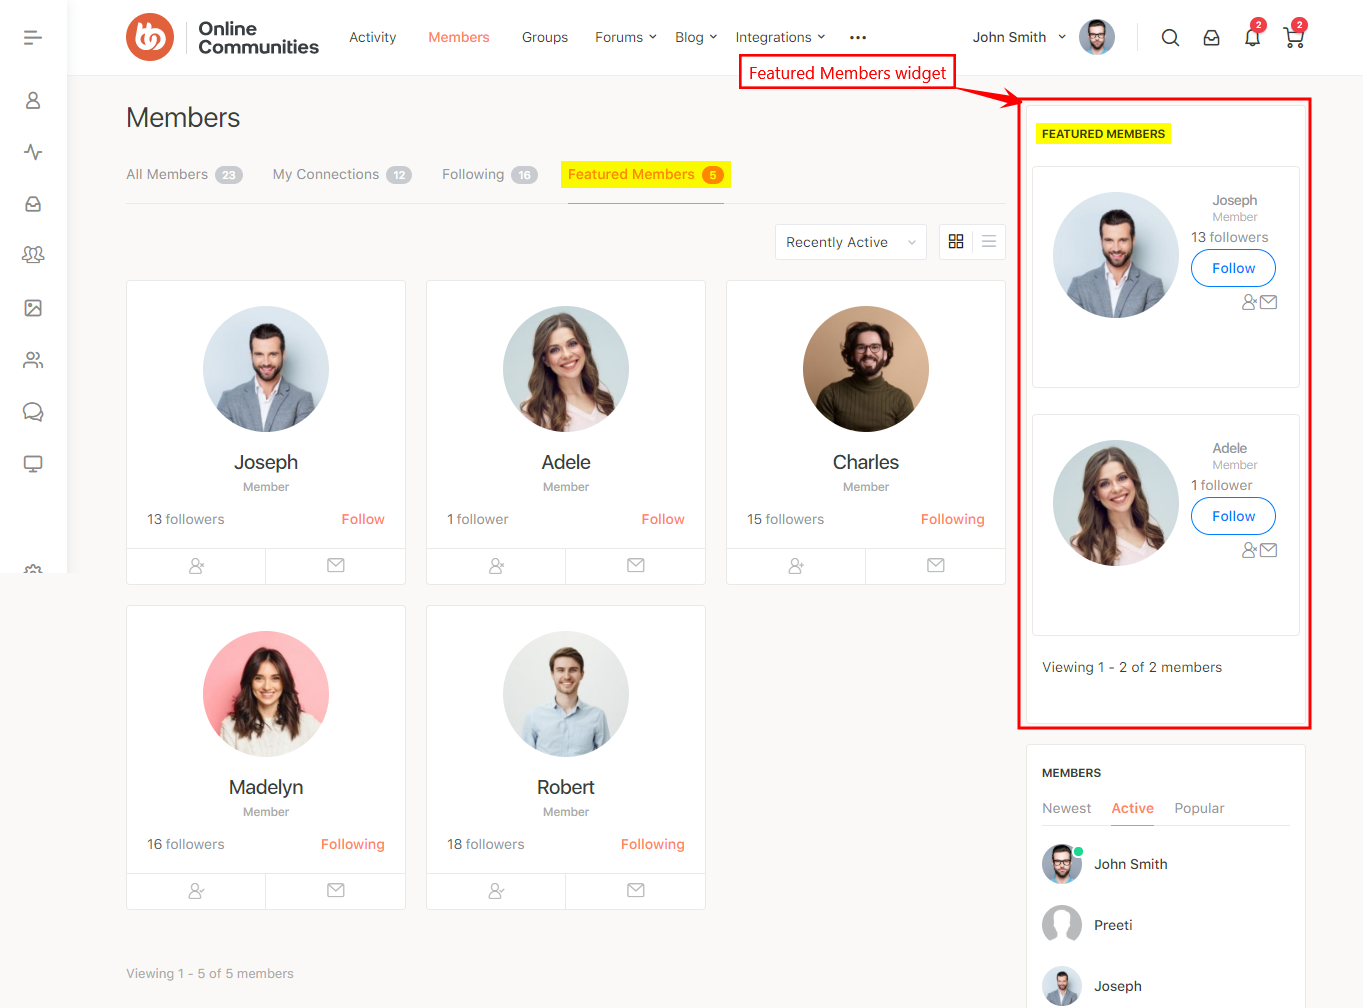 BuddyPress Featured Members - Featured members on Members page and Featured Members widget